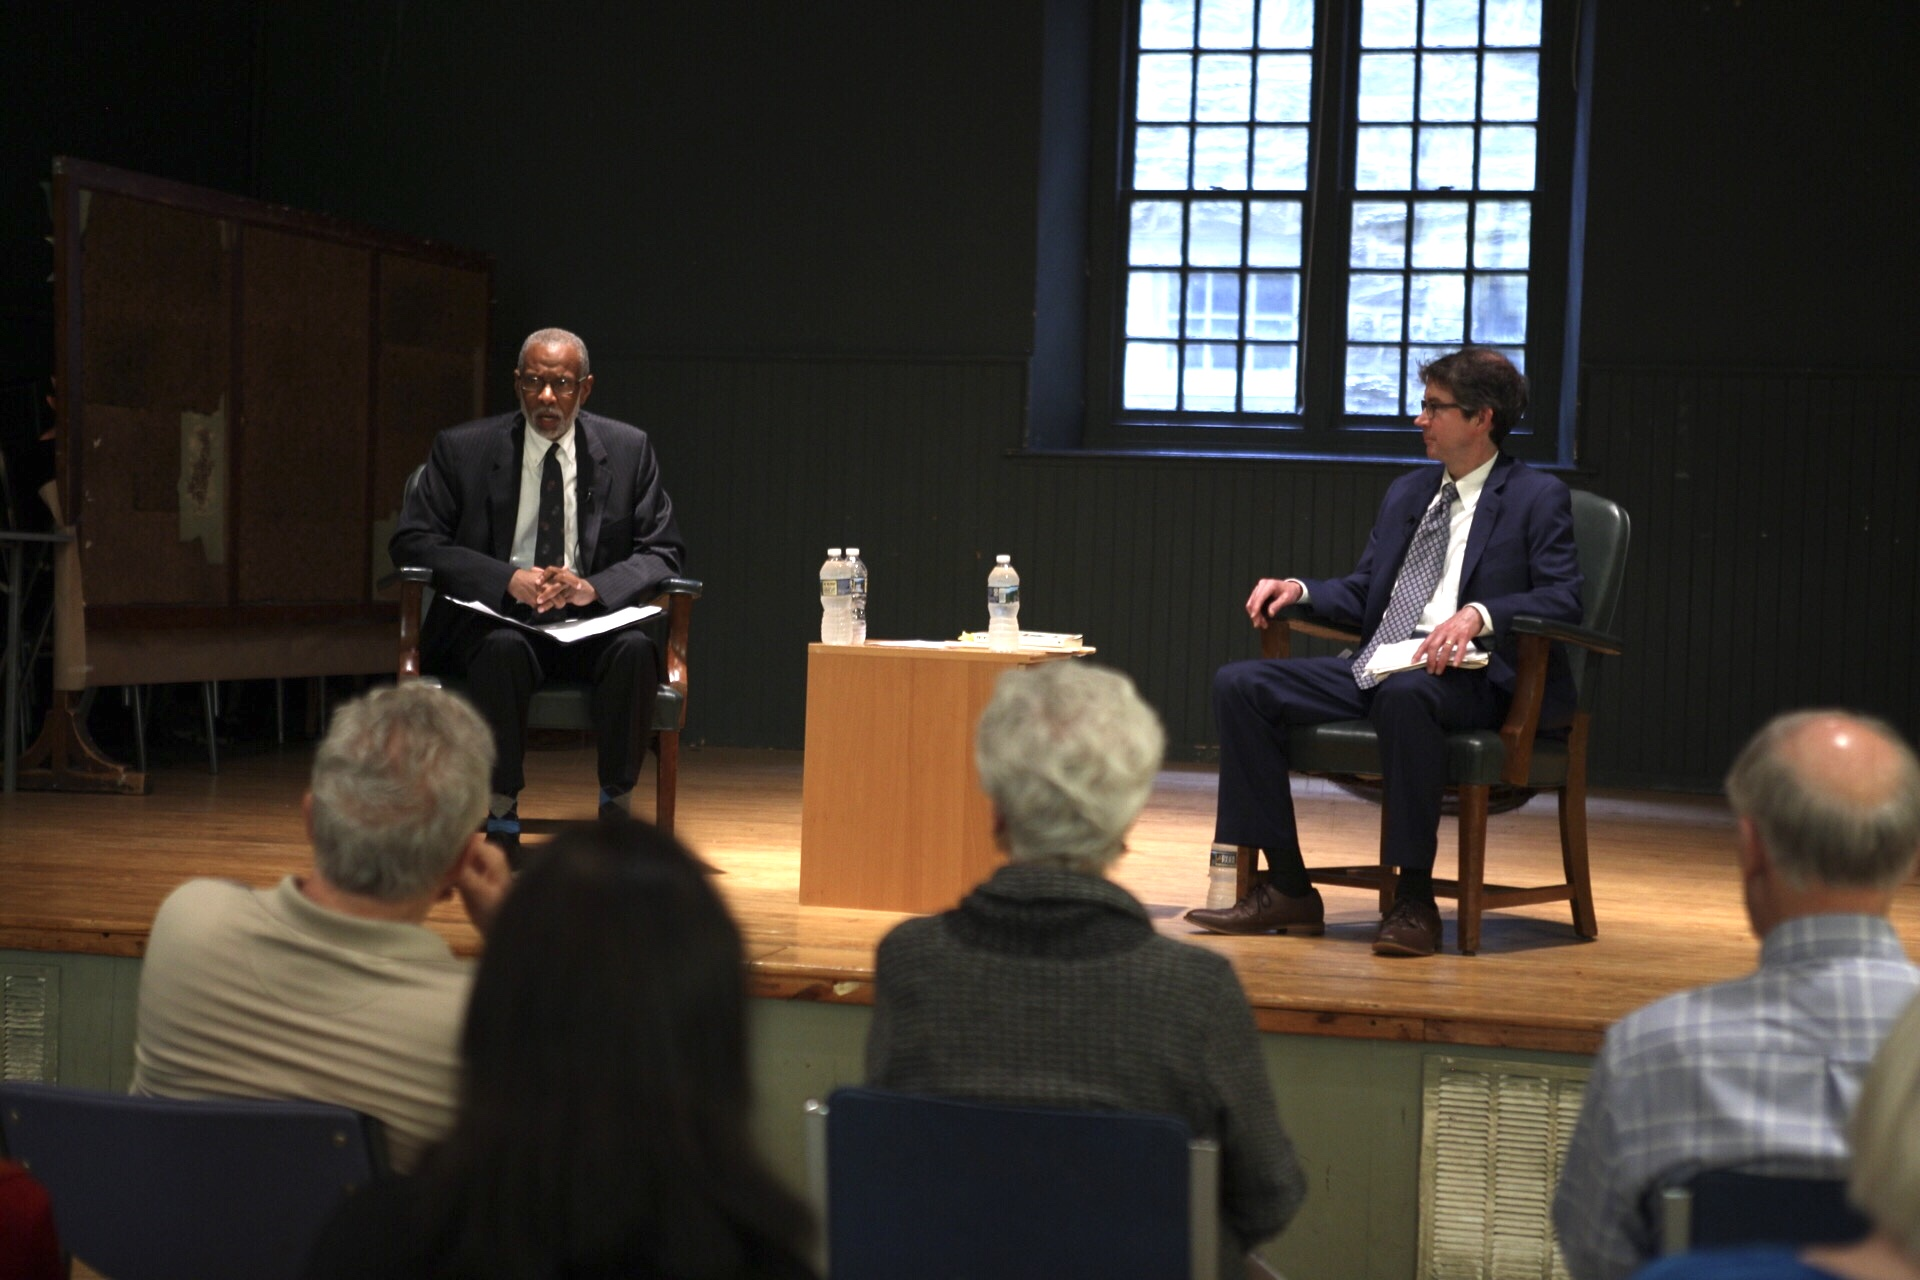 May 23, 2019: Senator Haywood hosts a Presidential Impeachment Town hall with Constitutional Lawyer John Bonifaz.